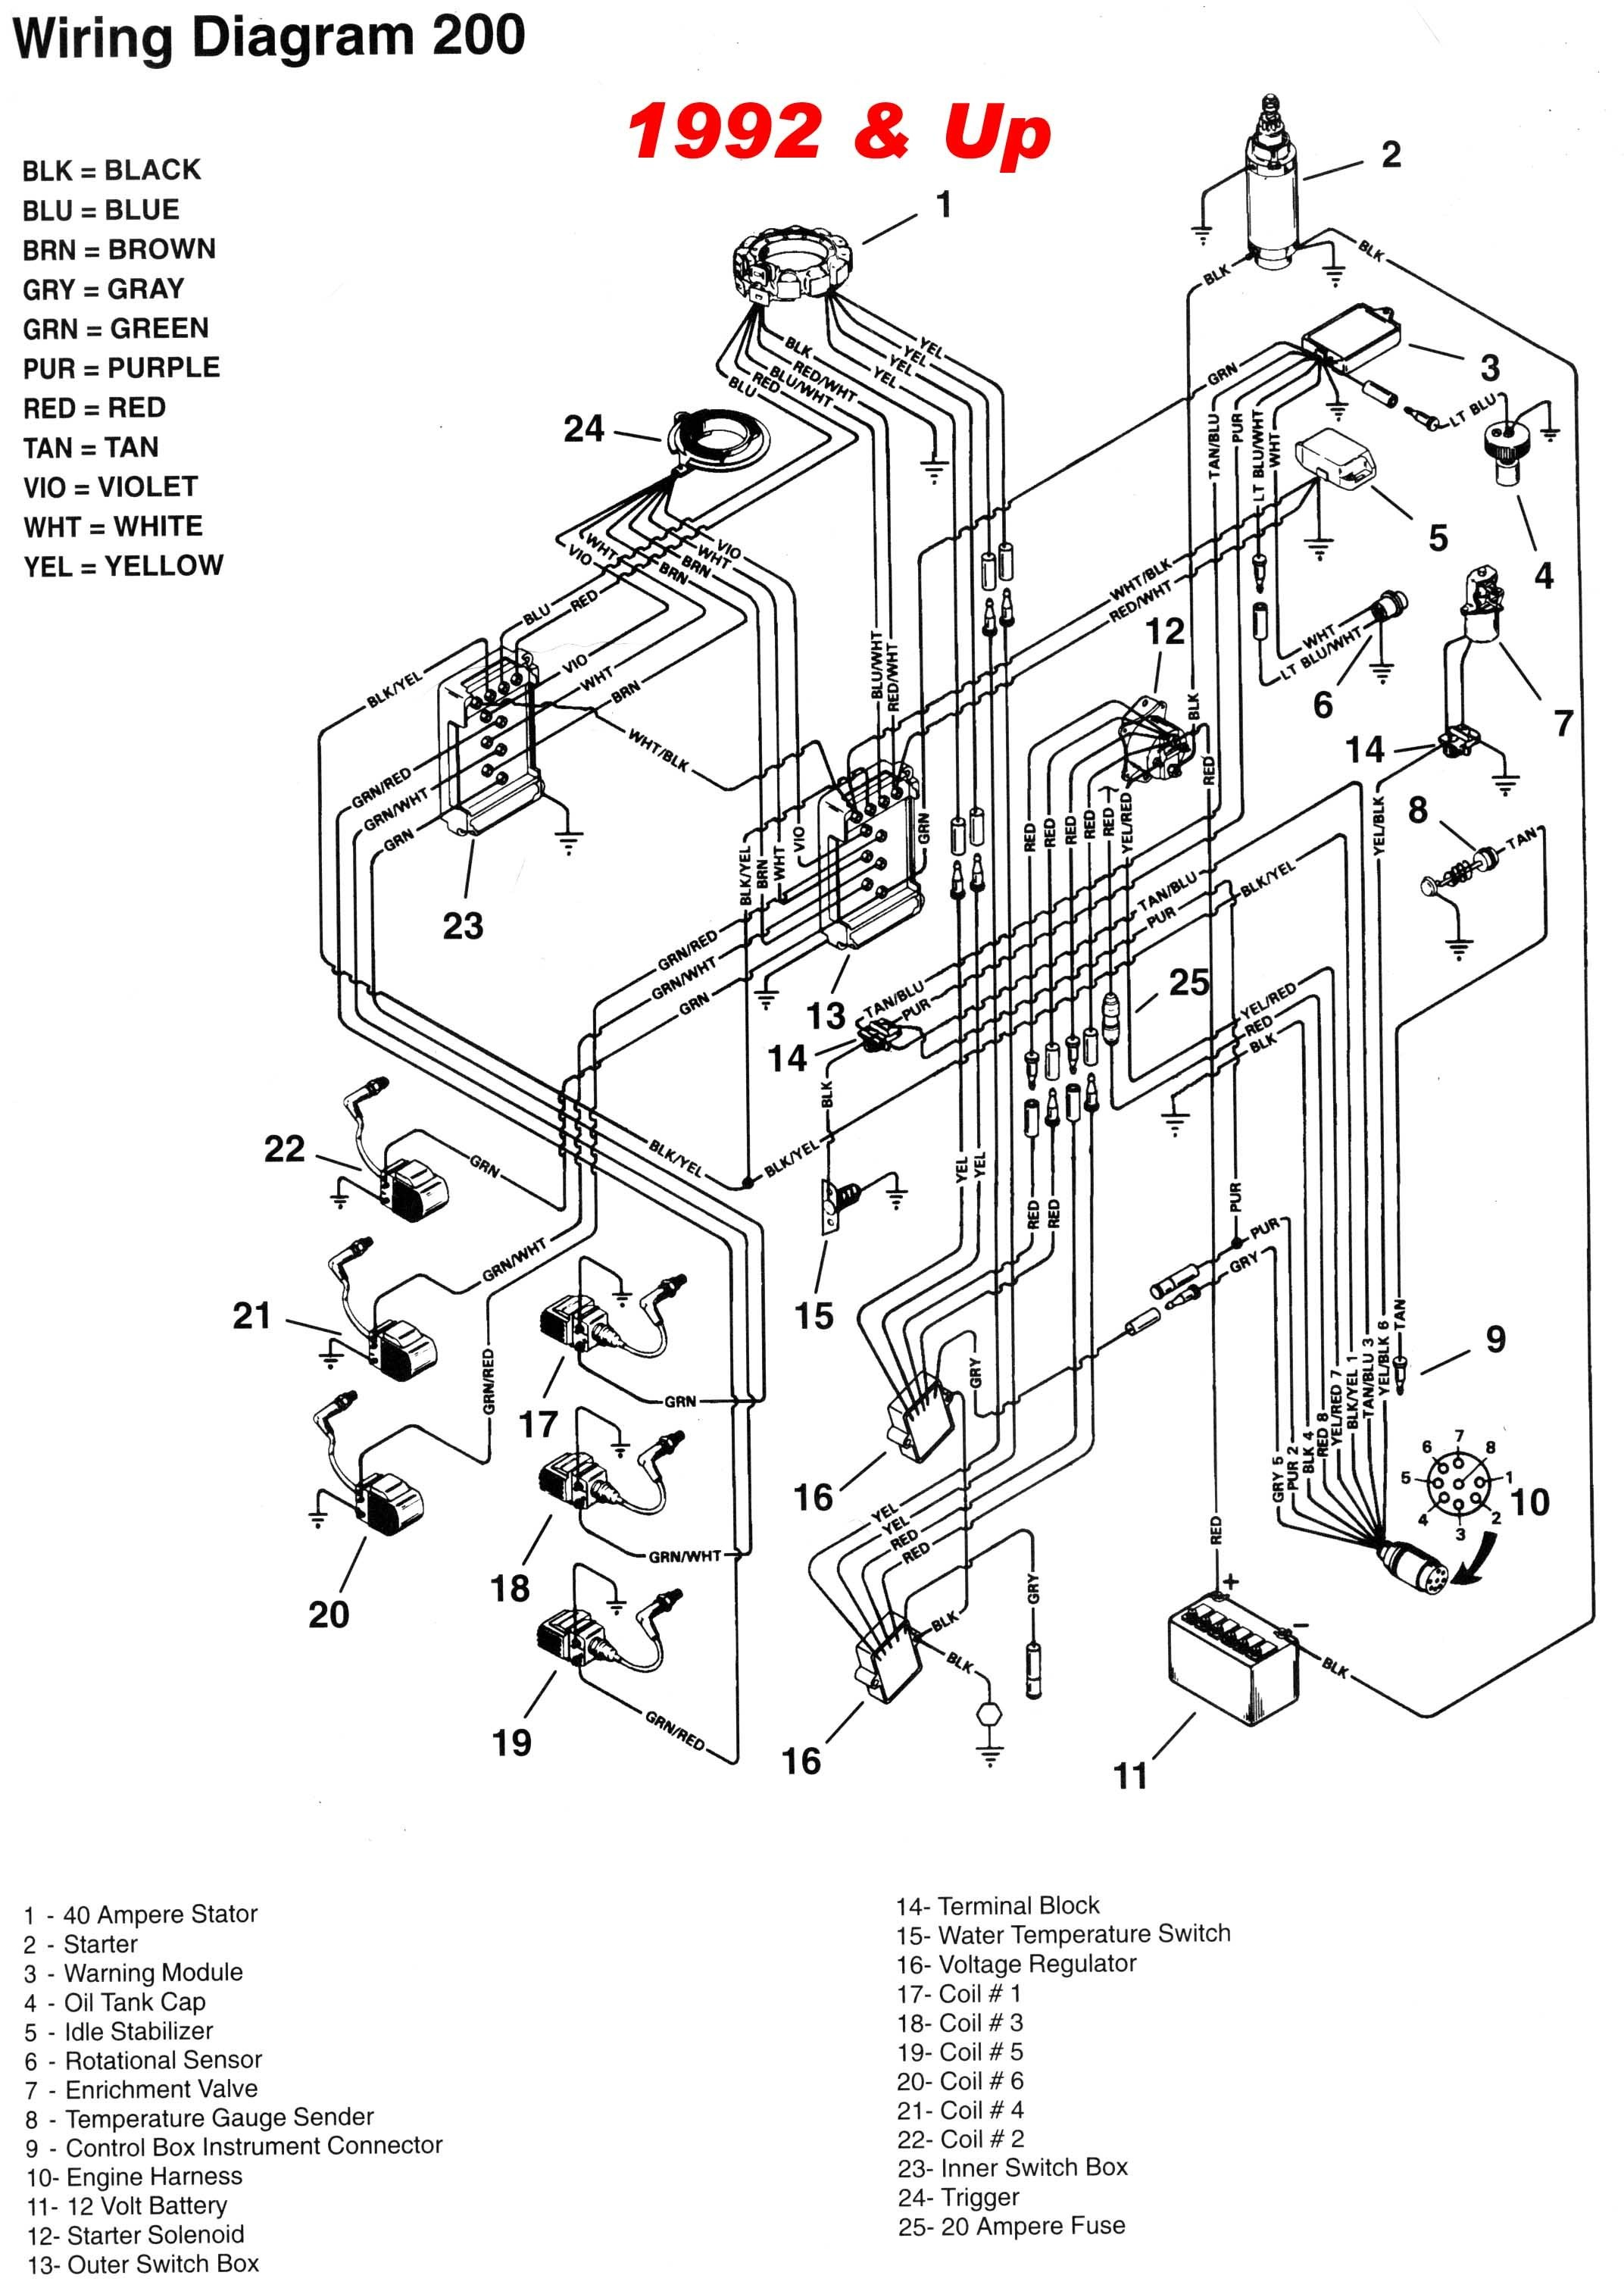 Mercury Outboard Ignition Diagram 51 Mercury Wiring Diagram Of Mercury Outboard Ignition Diagram